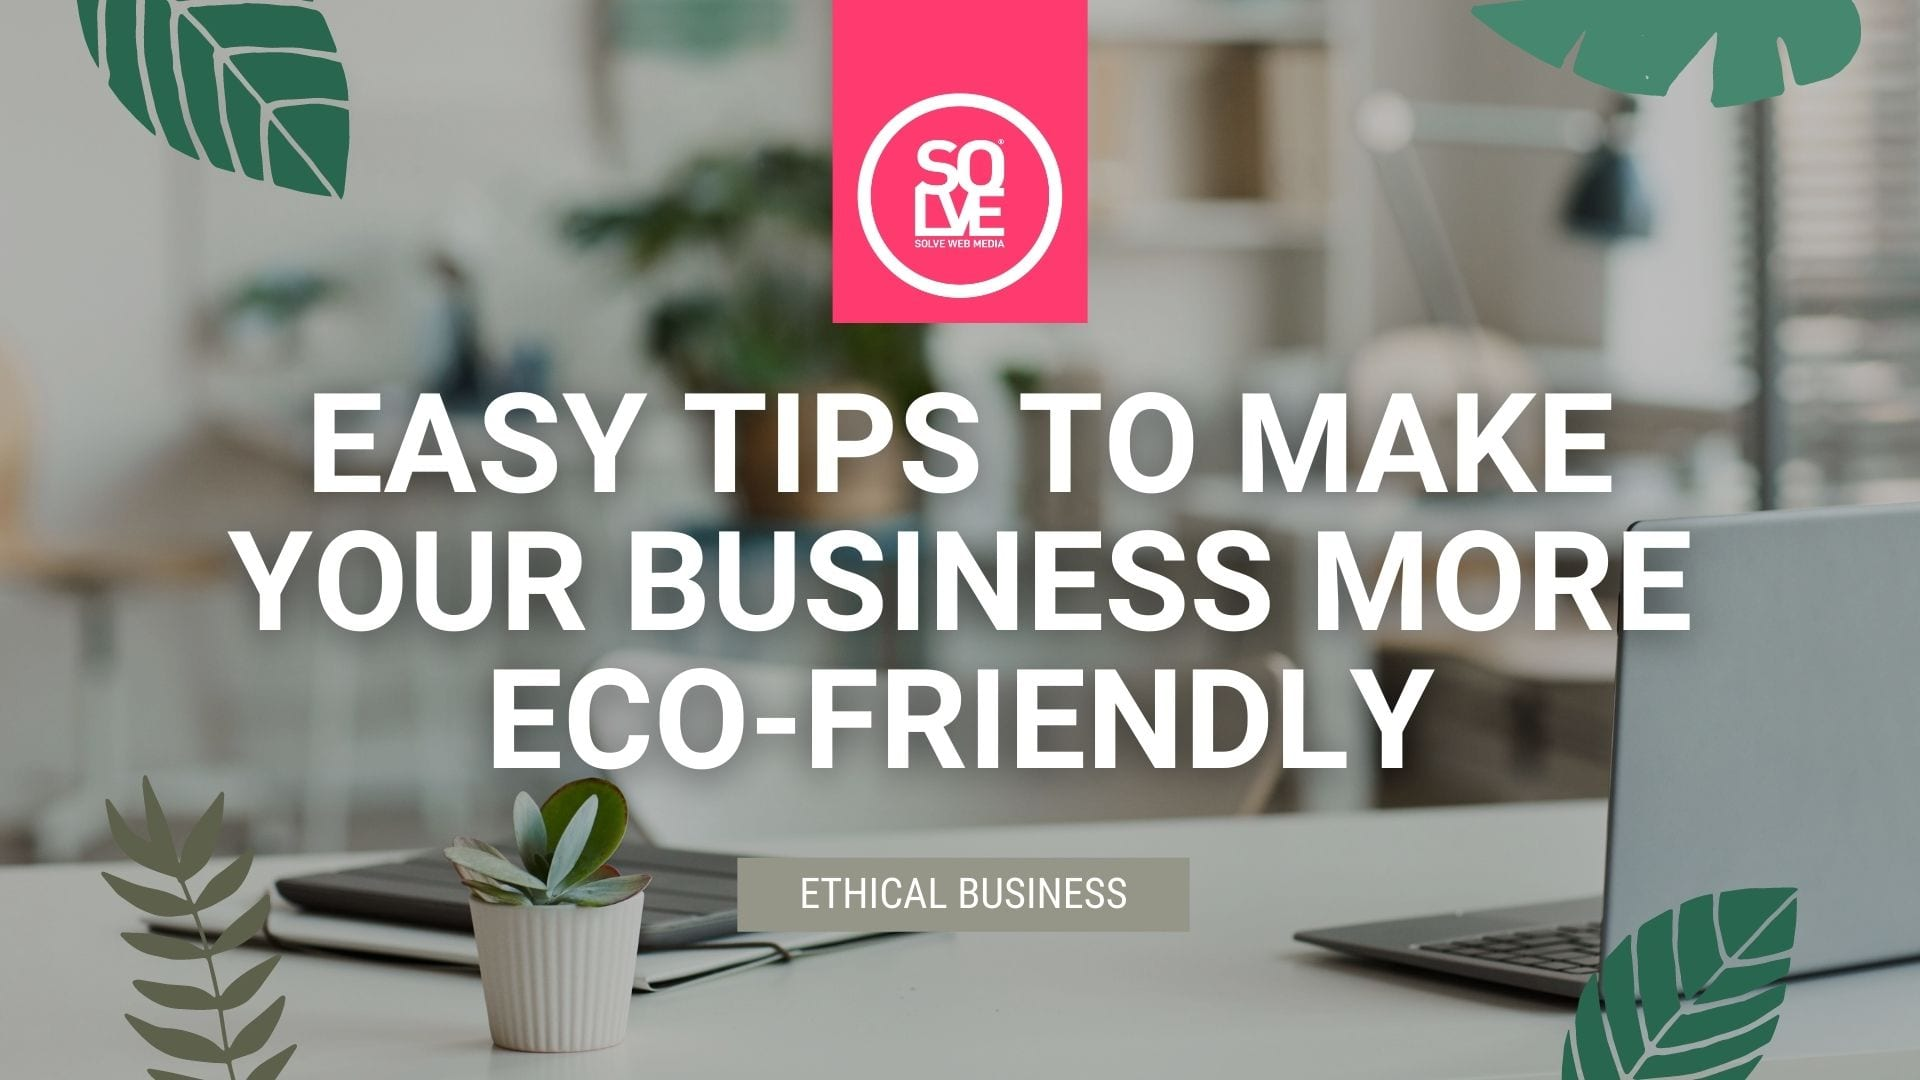 9 Easy Tips to Make Your Business More Eco-Friendly 1